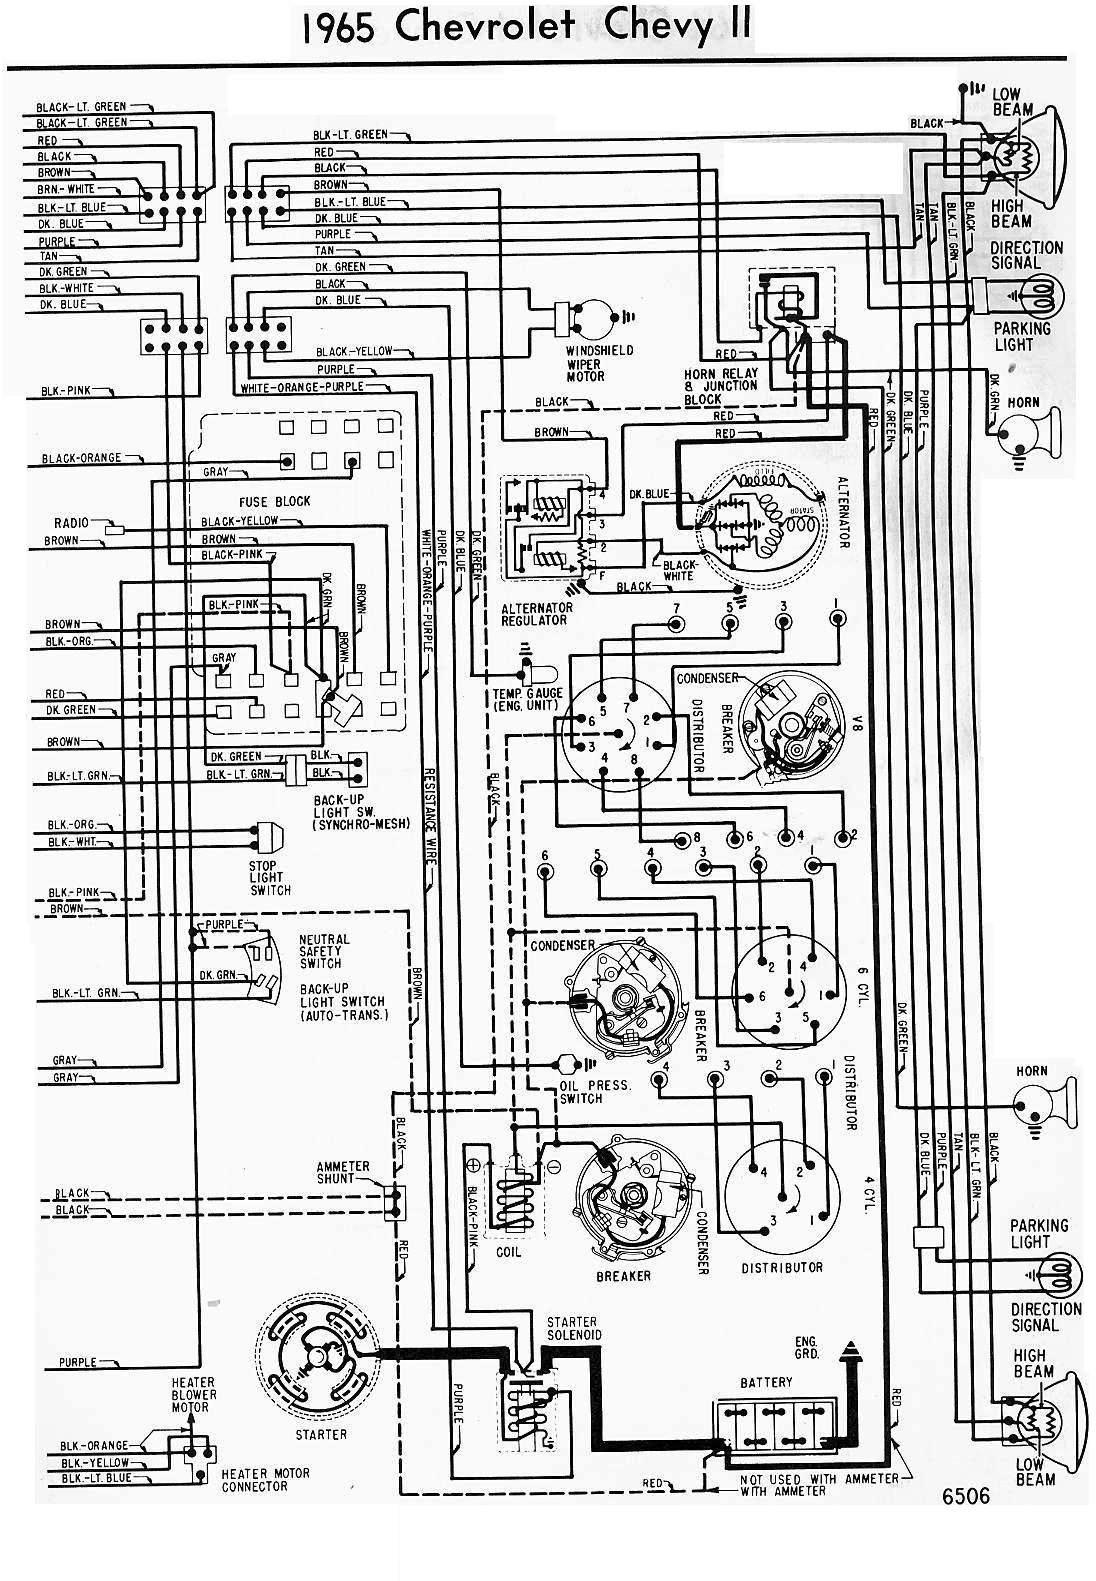 1964 chevy nova wiring diagram horse skeleton blank 1965 chevrolet ii | all about diagrams